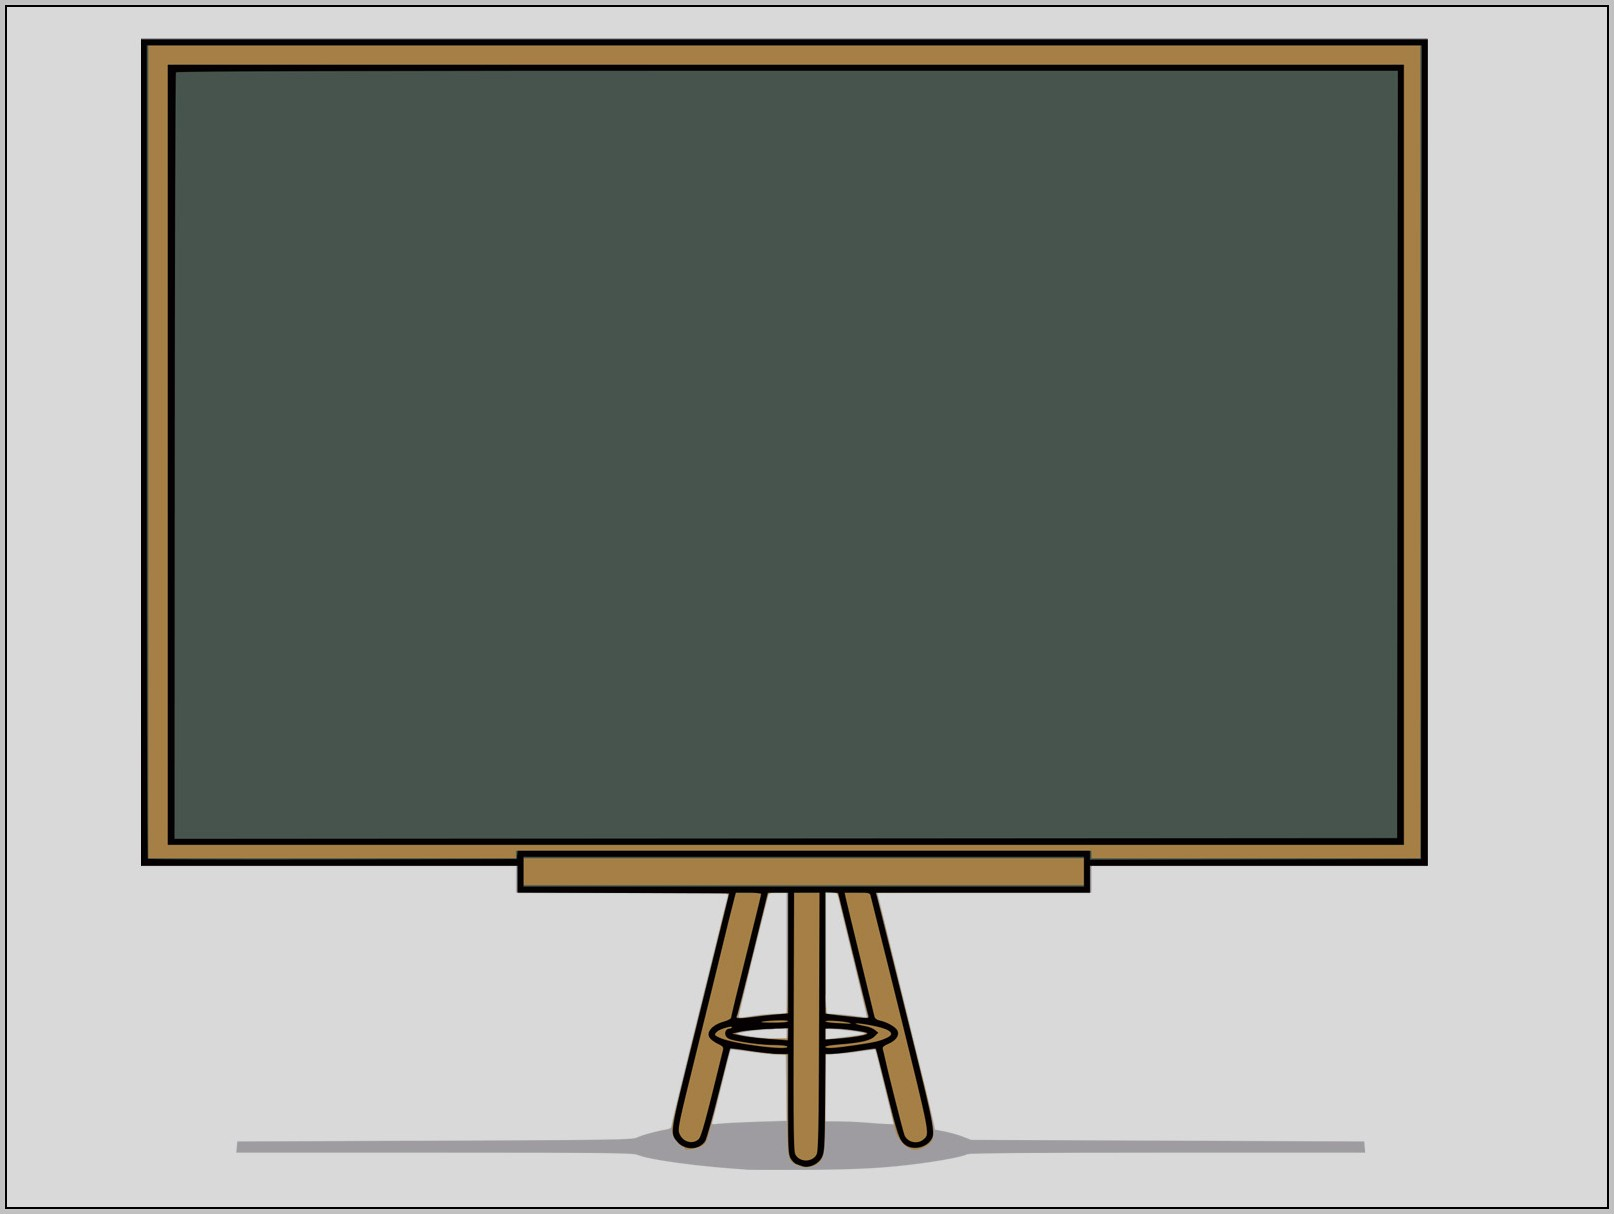 Background For Powerpoint Presentation